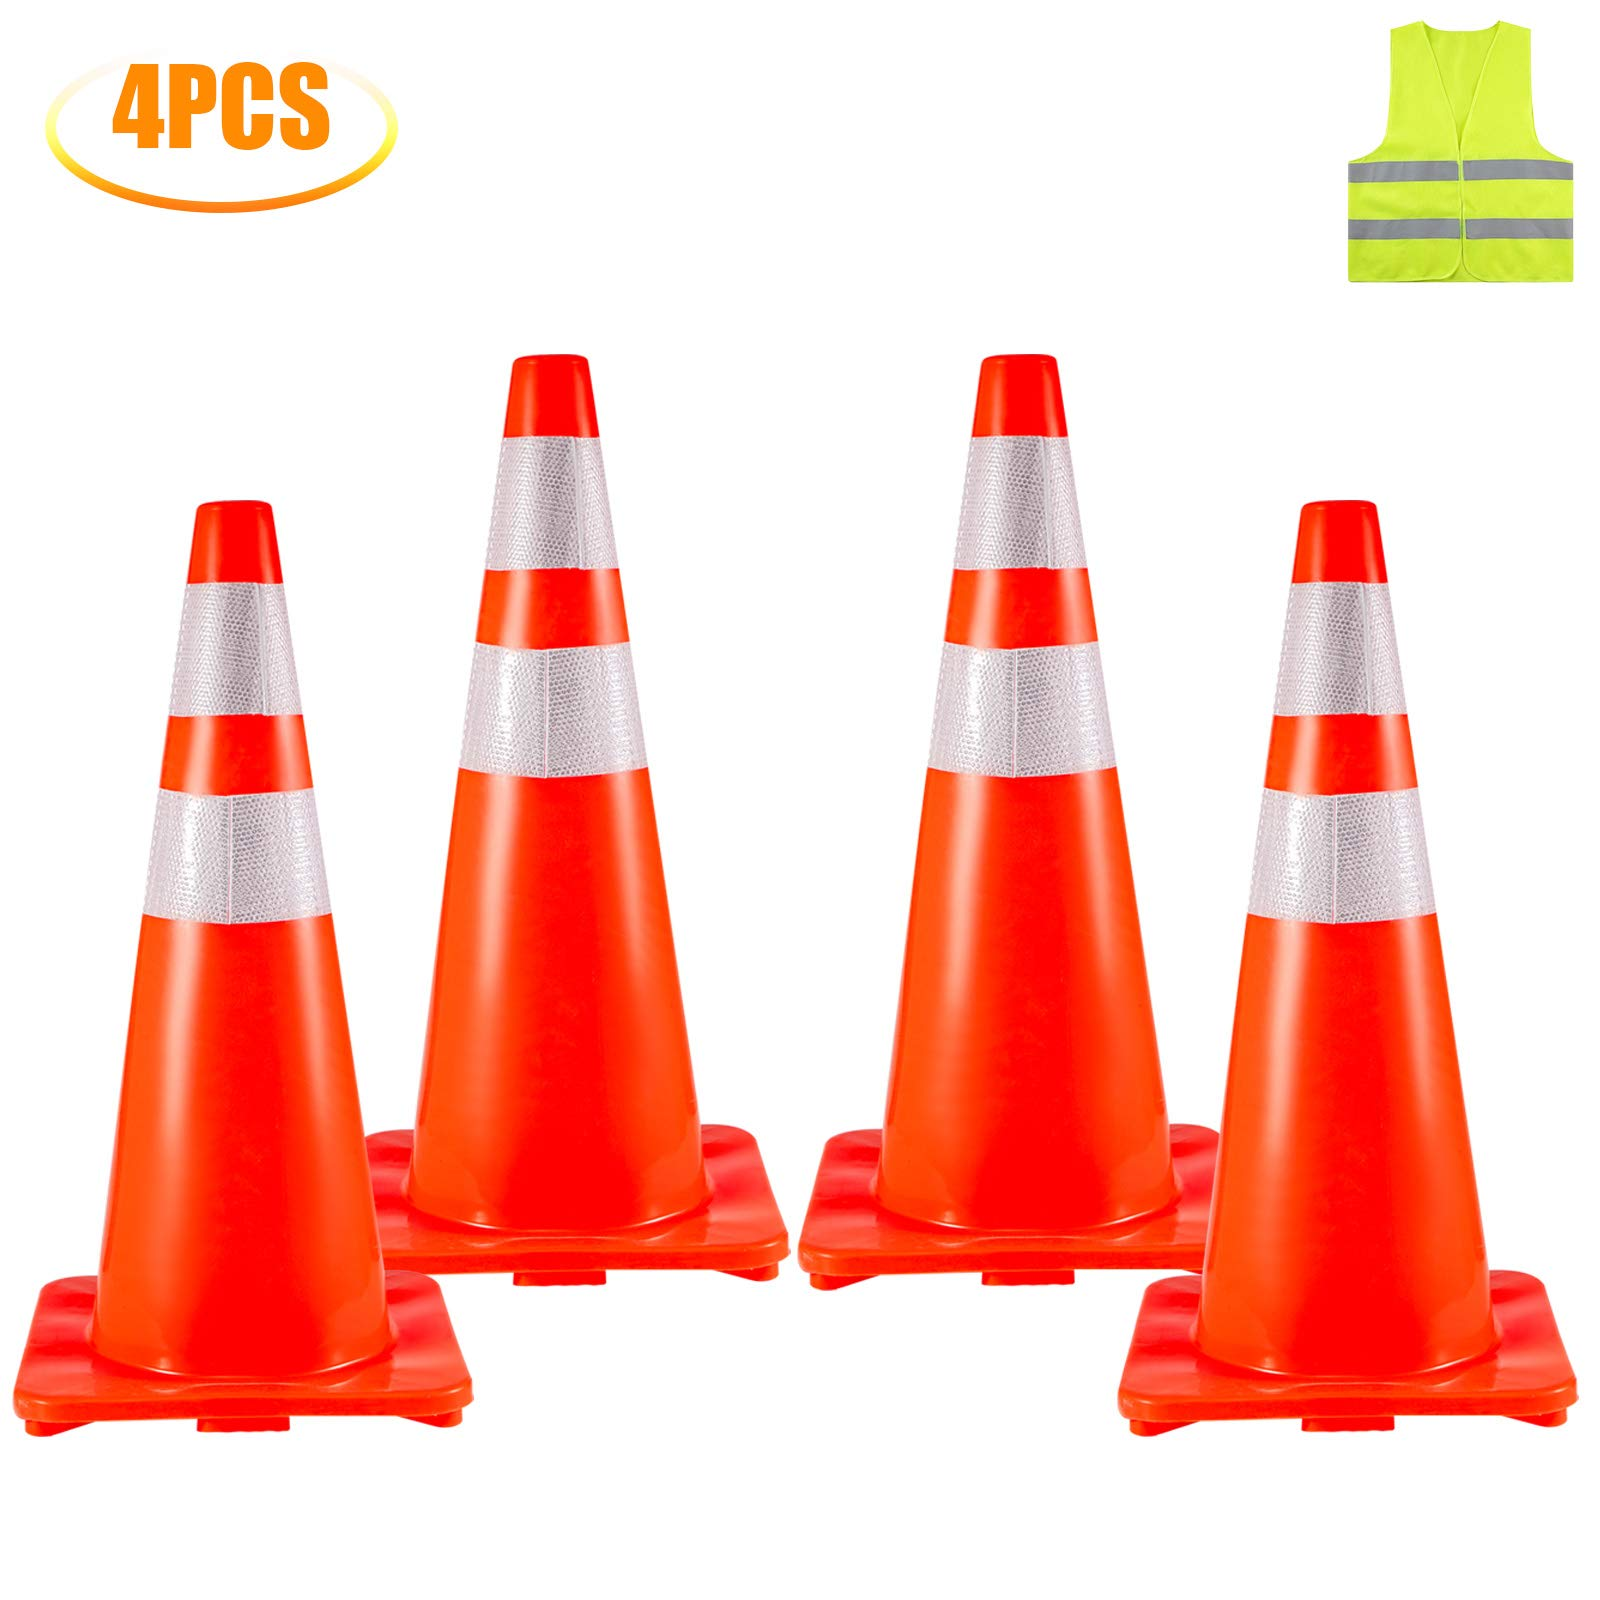 BestEquip 4 Traffic Cones 28'' Safety Cones PVC Orange Traffic Safety Cone with Reflective Collar Road Packing Soccer Training Cones by BestEquip